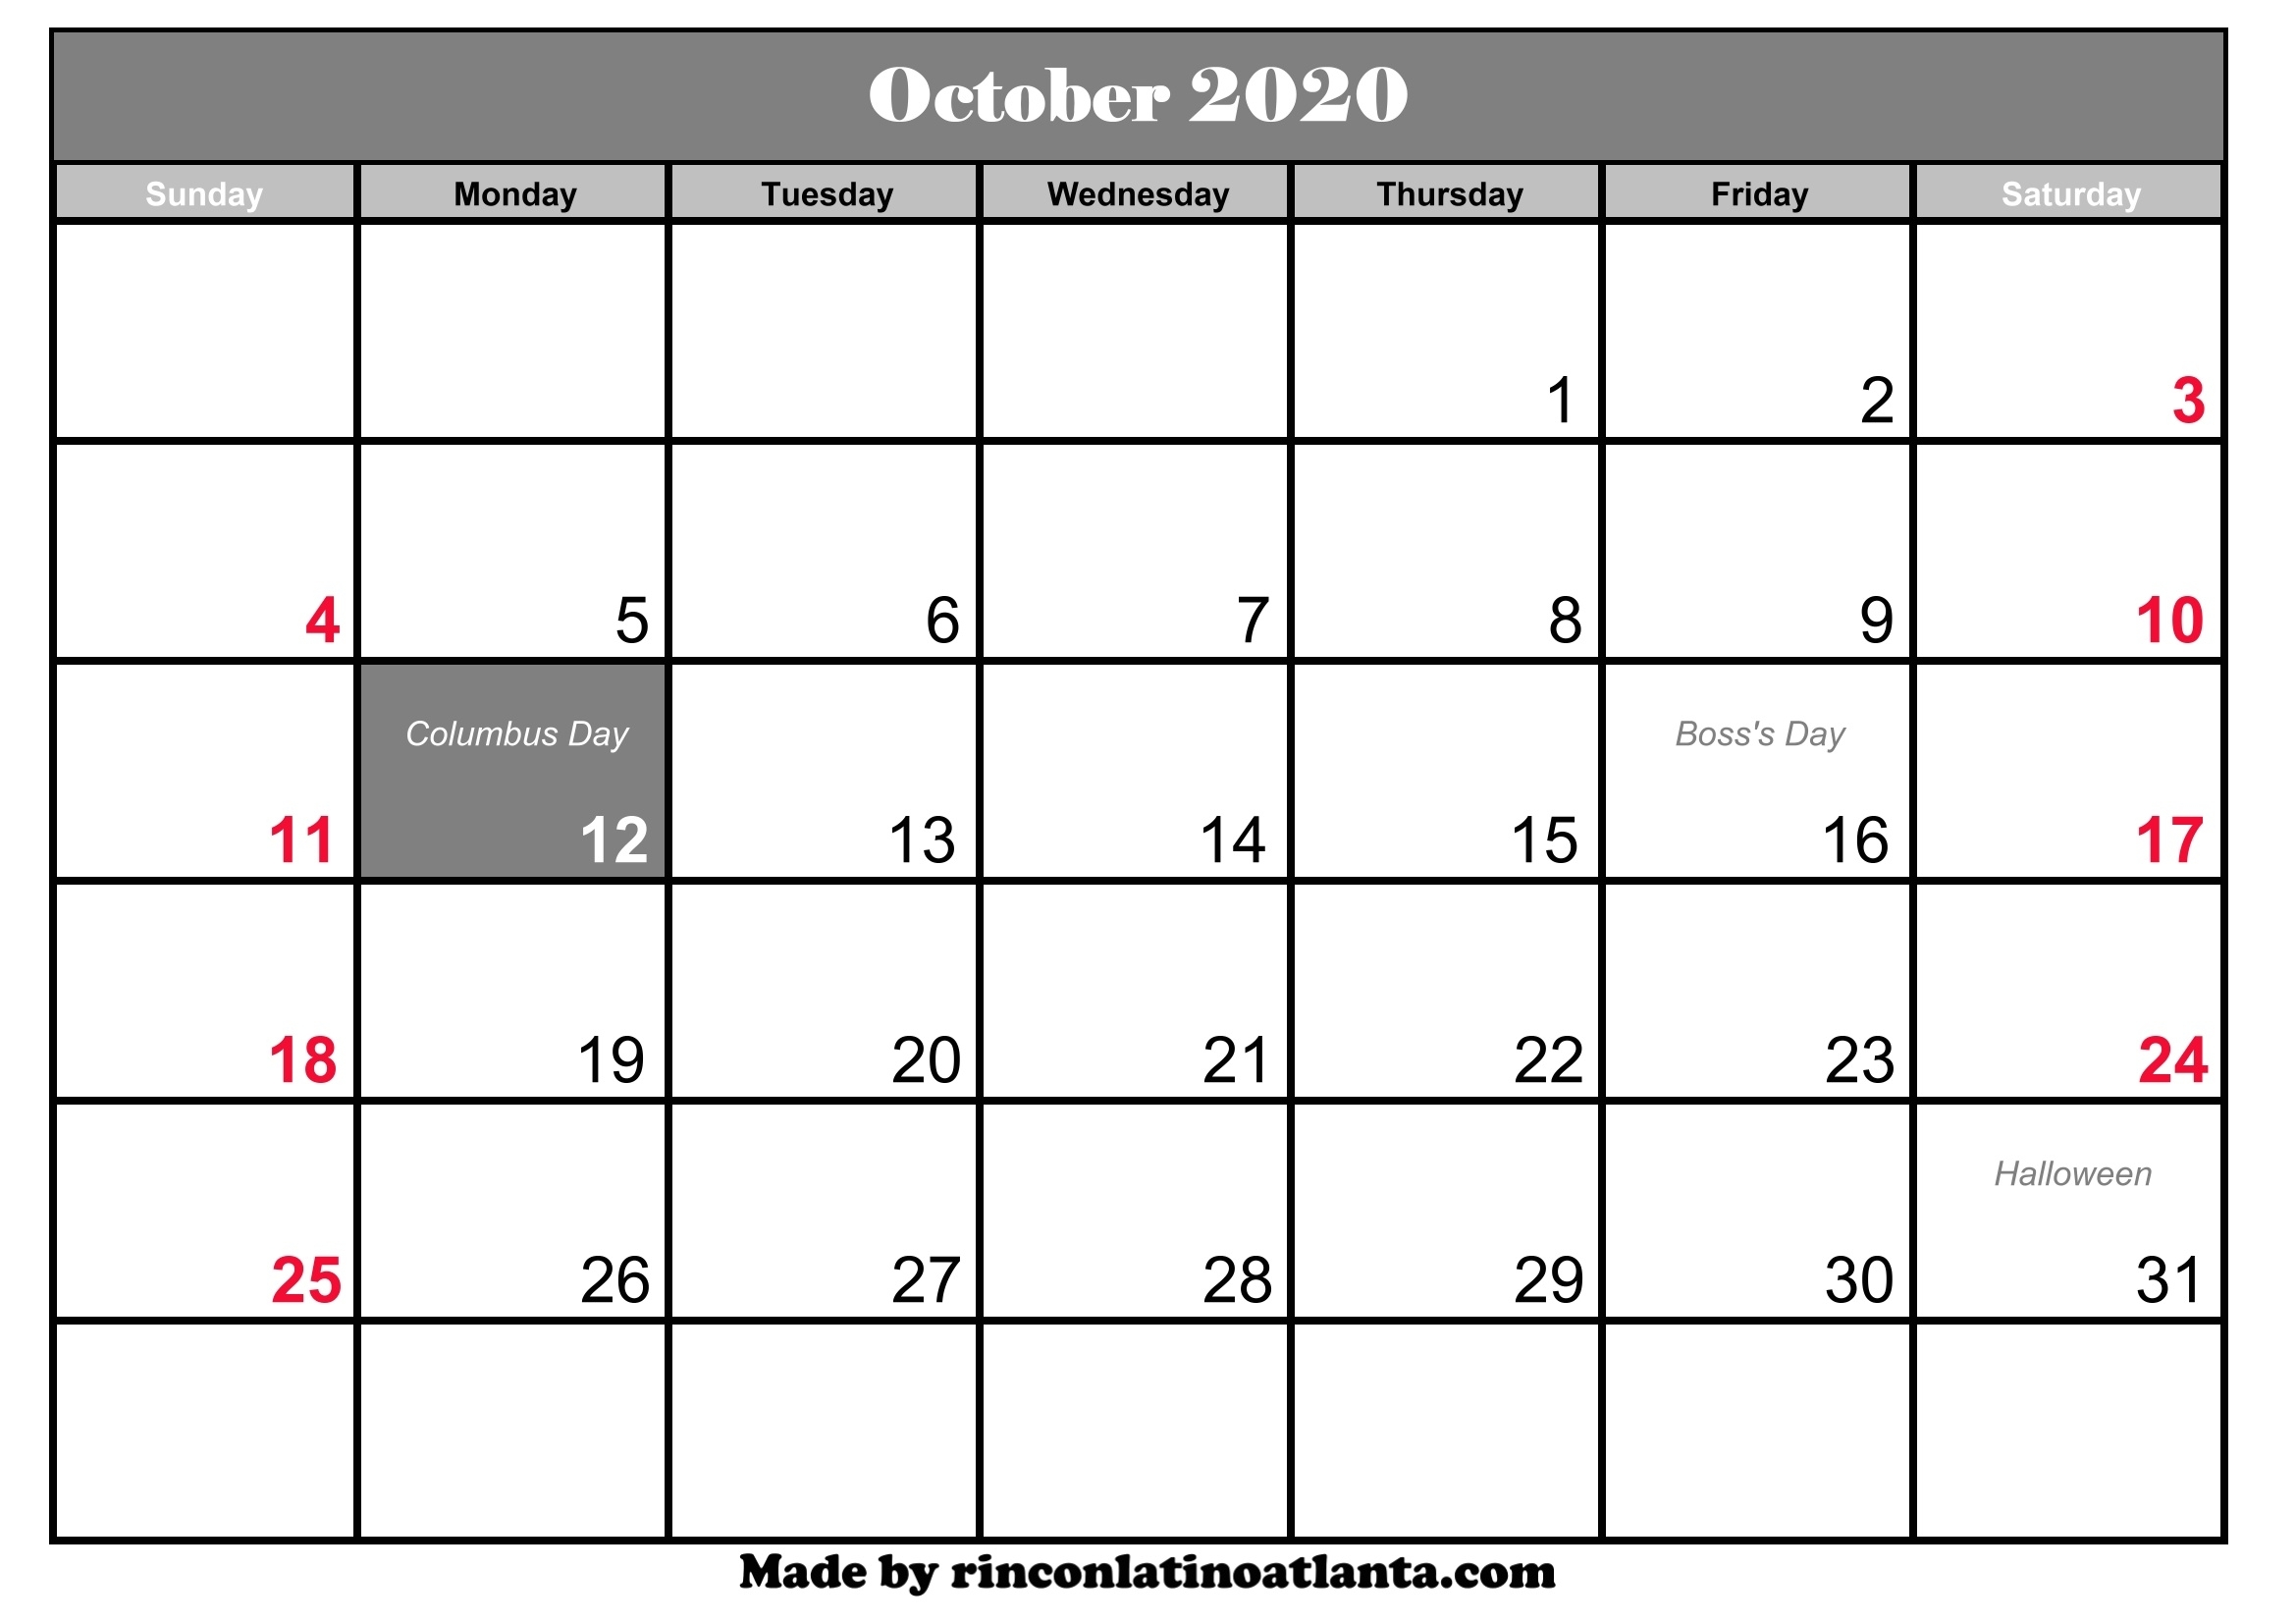 October 2020 Calendar Printable With Holidays | Calendar